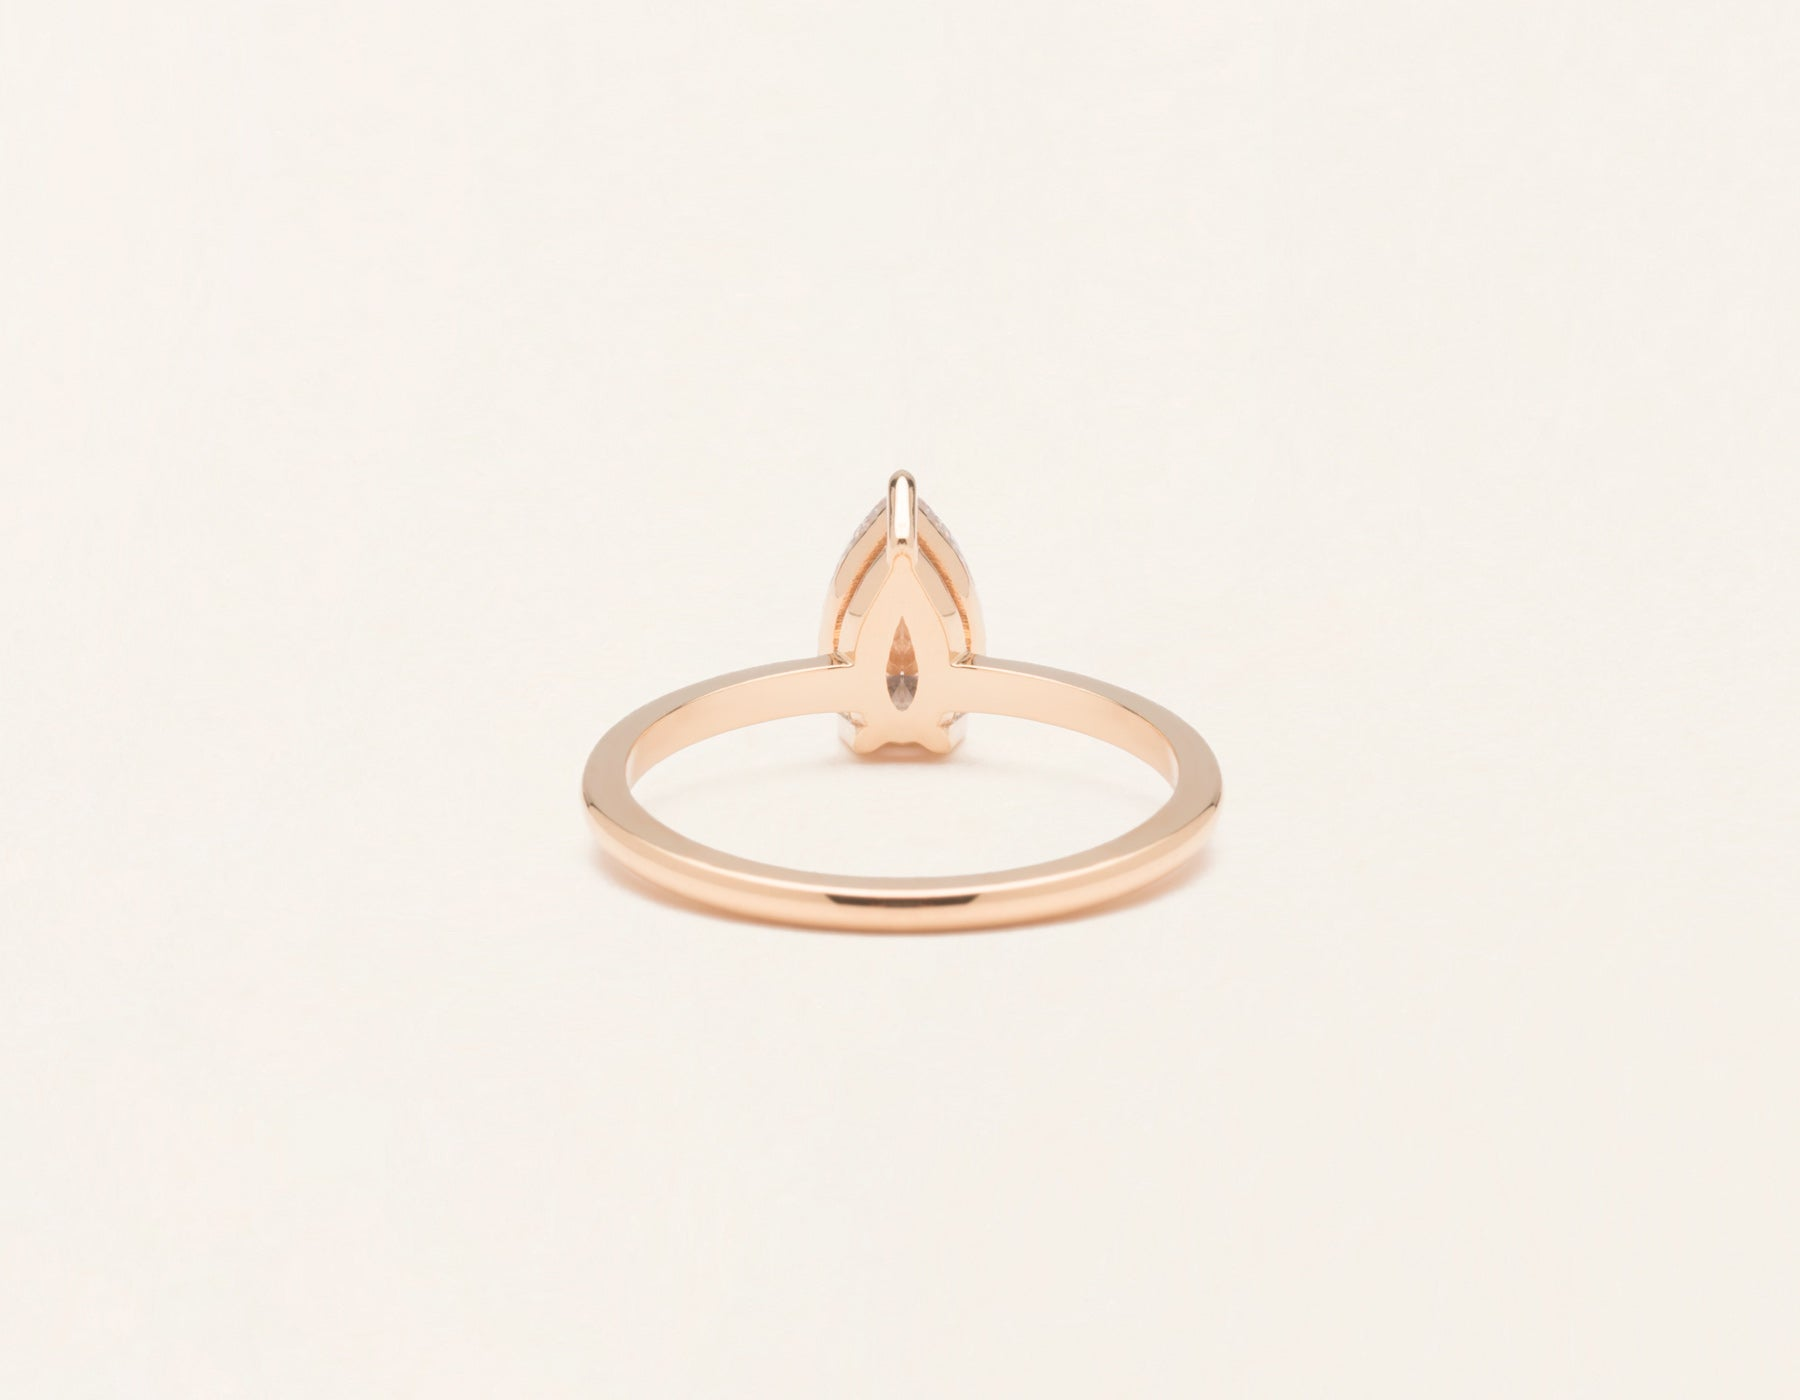 Vrai & Oro 18k solid rose gold Diamond engagement ring The pear simple classic band